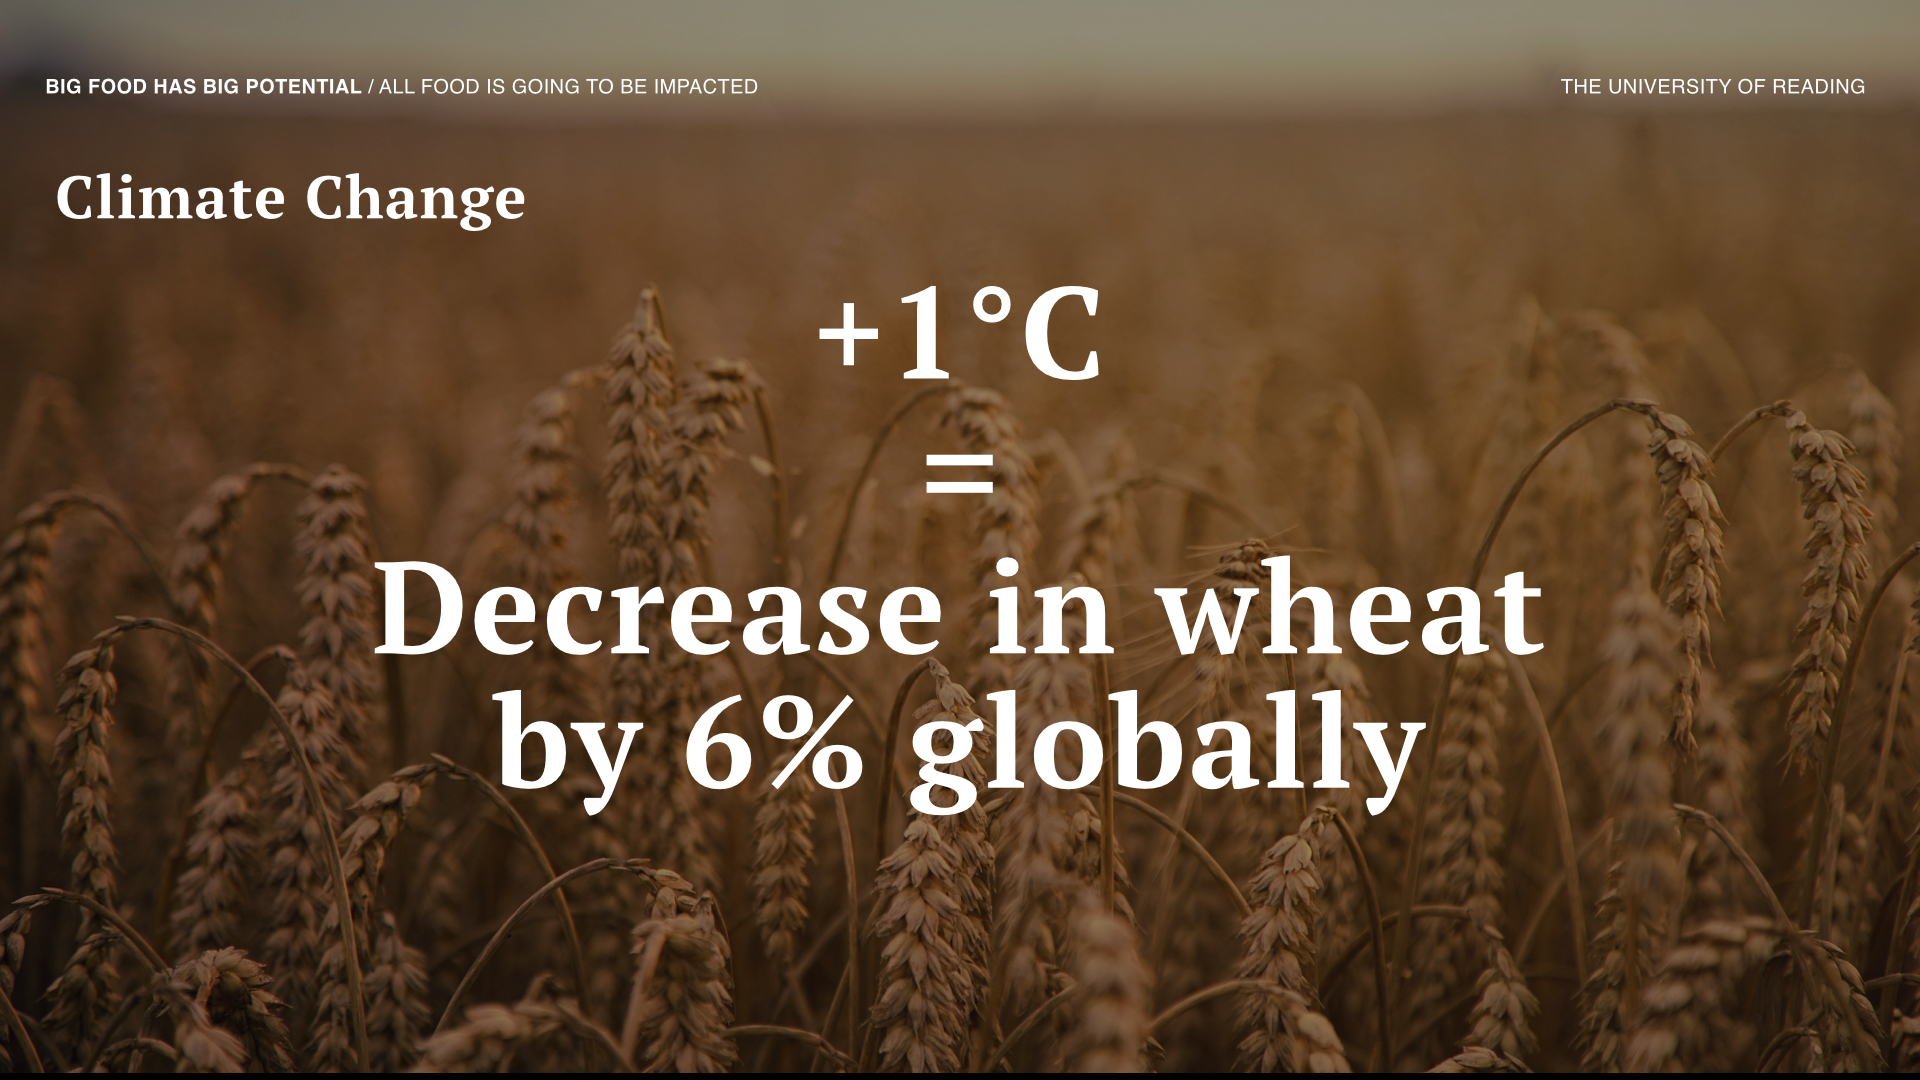 Climate change will affect food production drastically. For every one degree Celsius rise in temperature wheat production will fall by 6% globally.